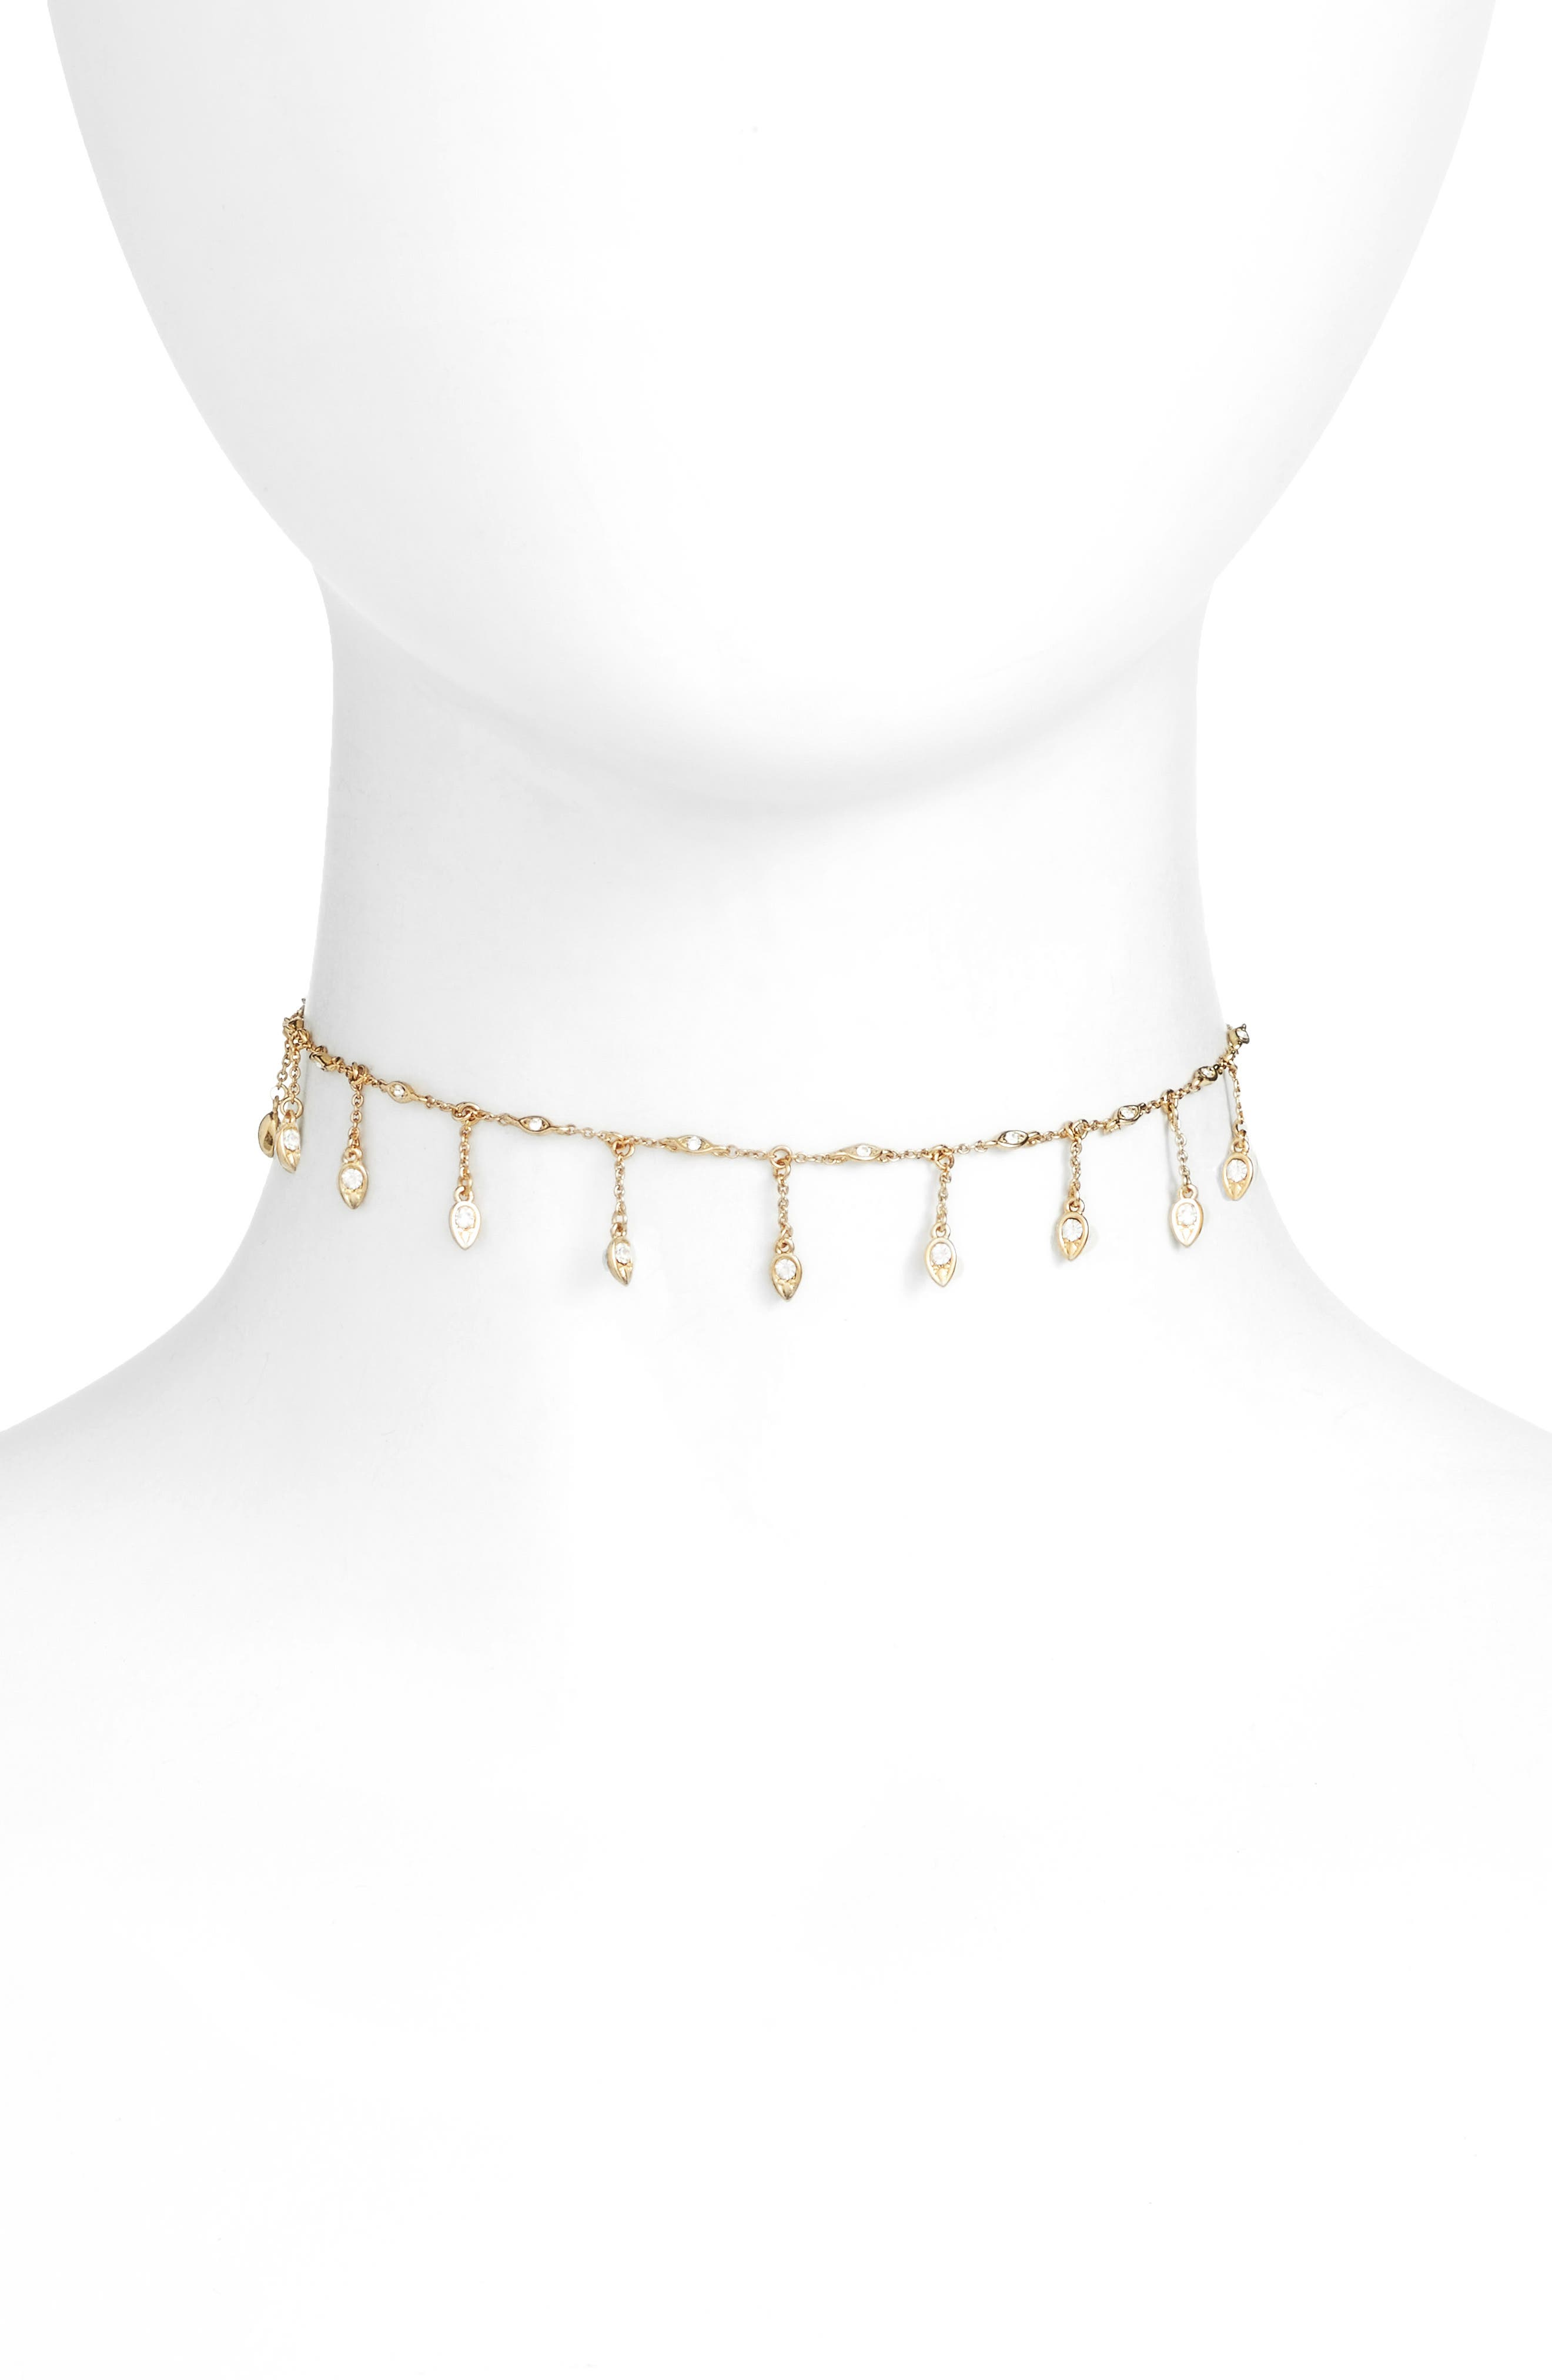 Revel Starburst Choker Necklace,                         Main,                         color, Gold